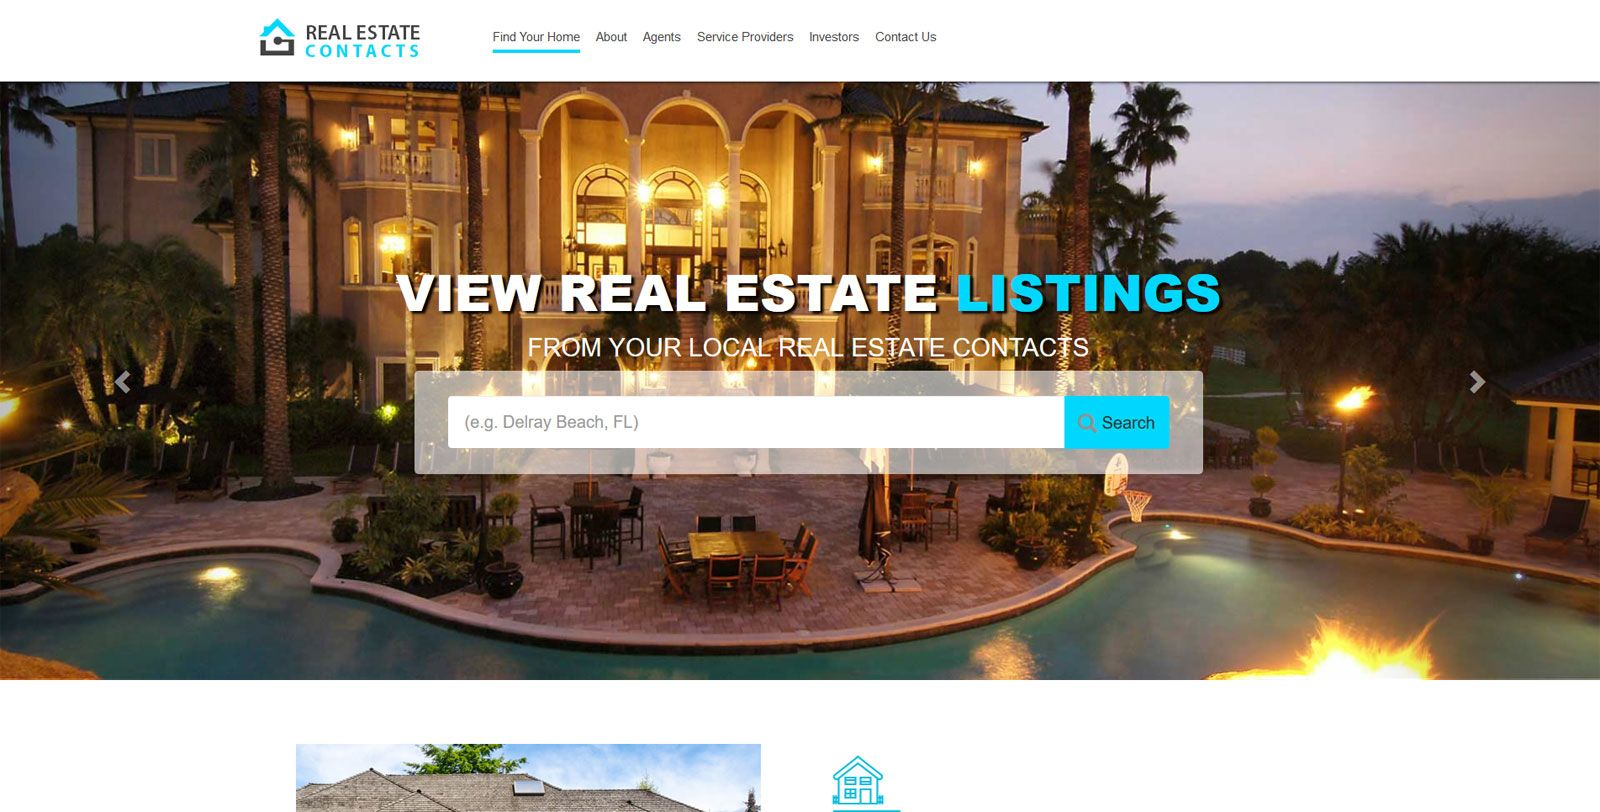 realestatecontacts featured